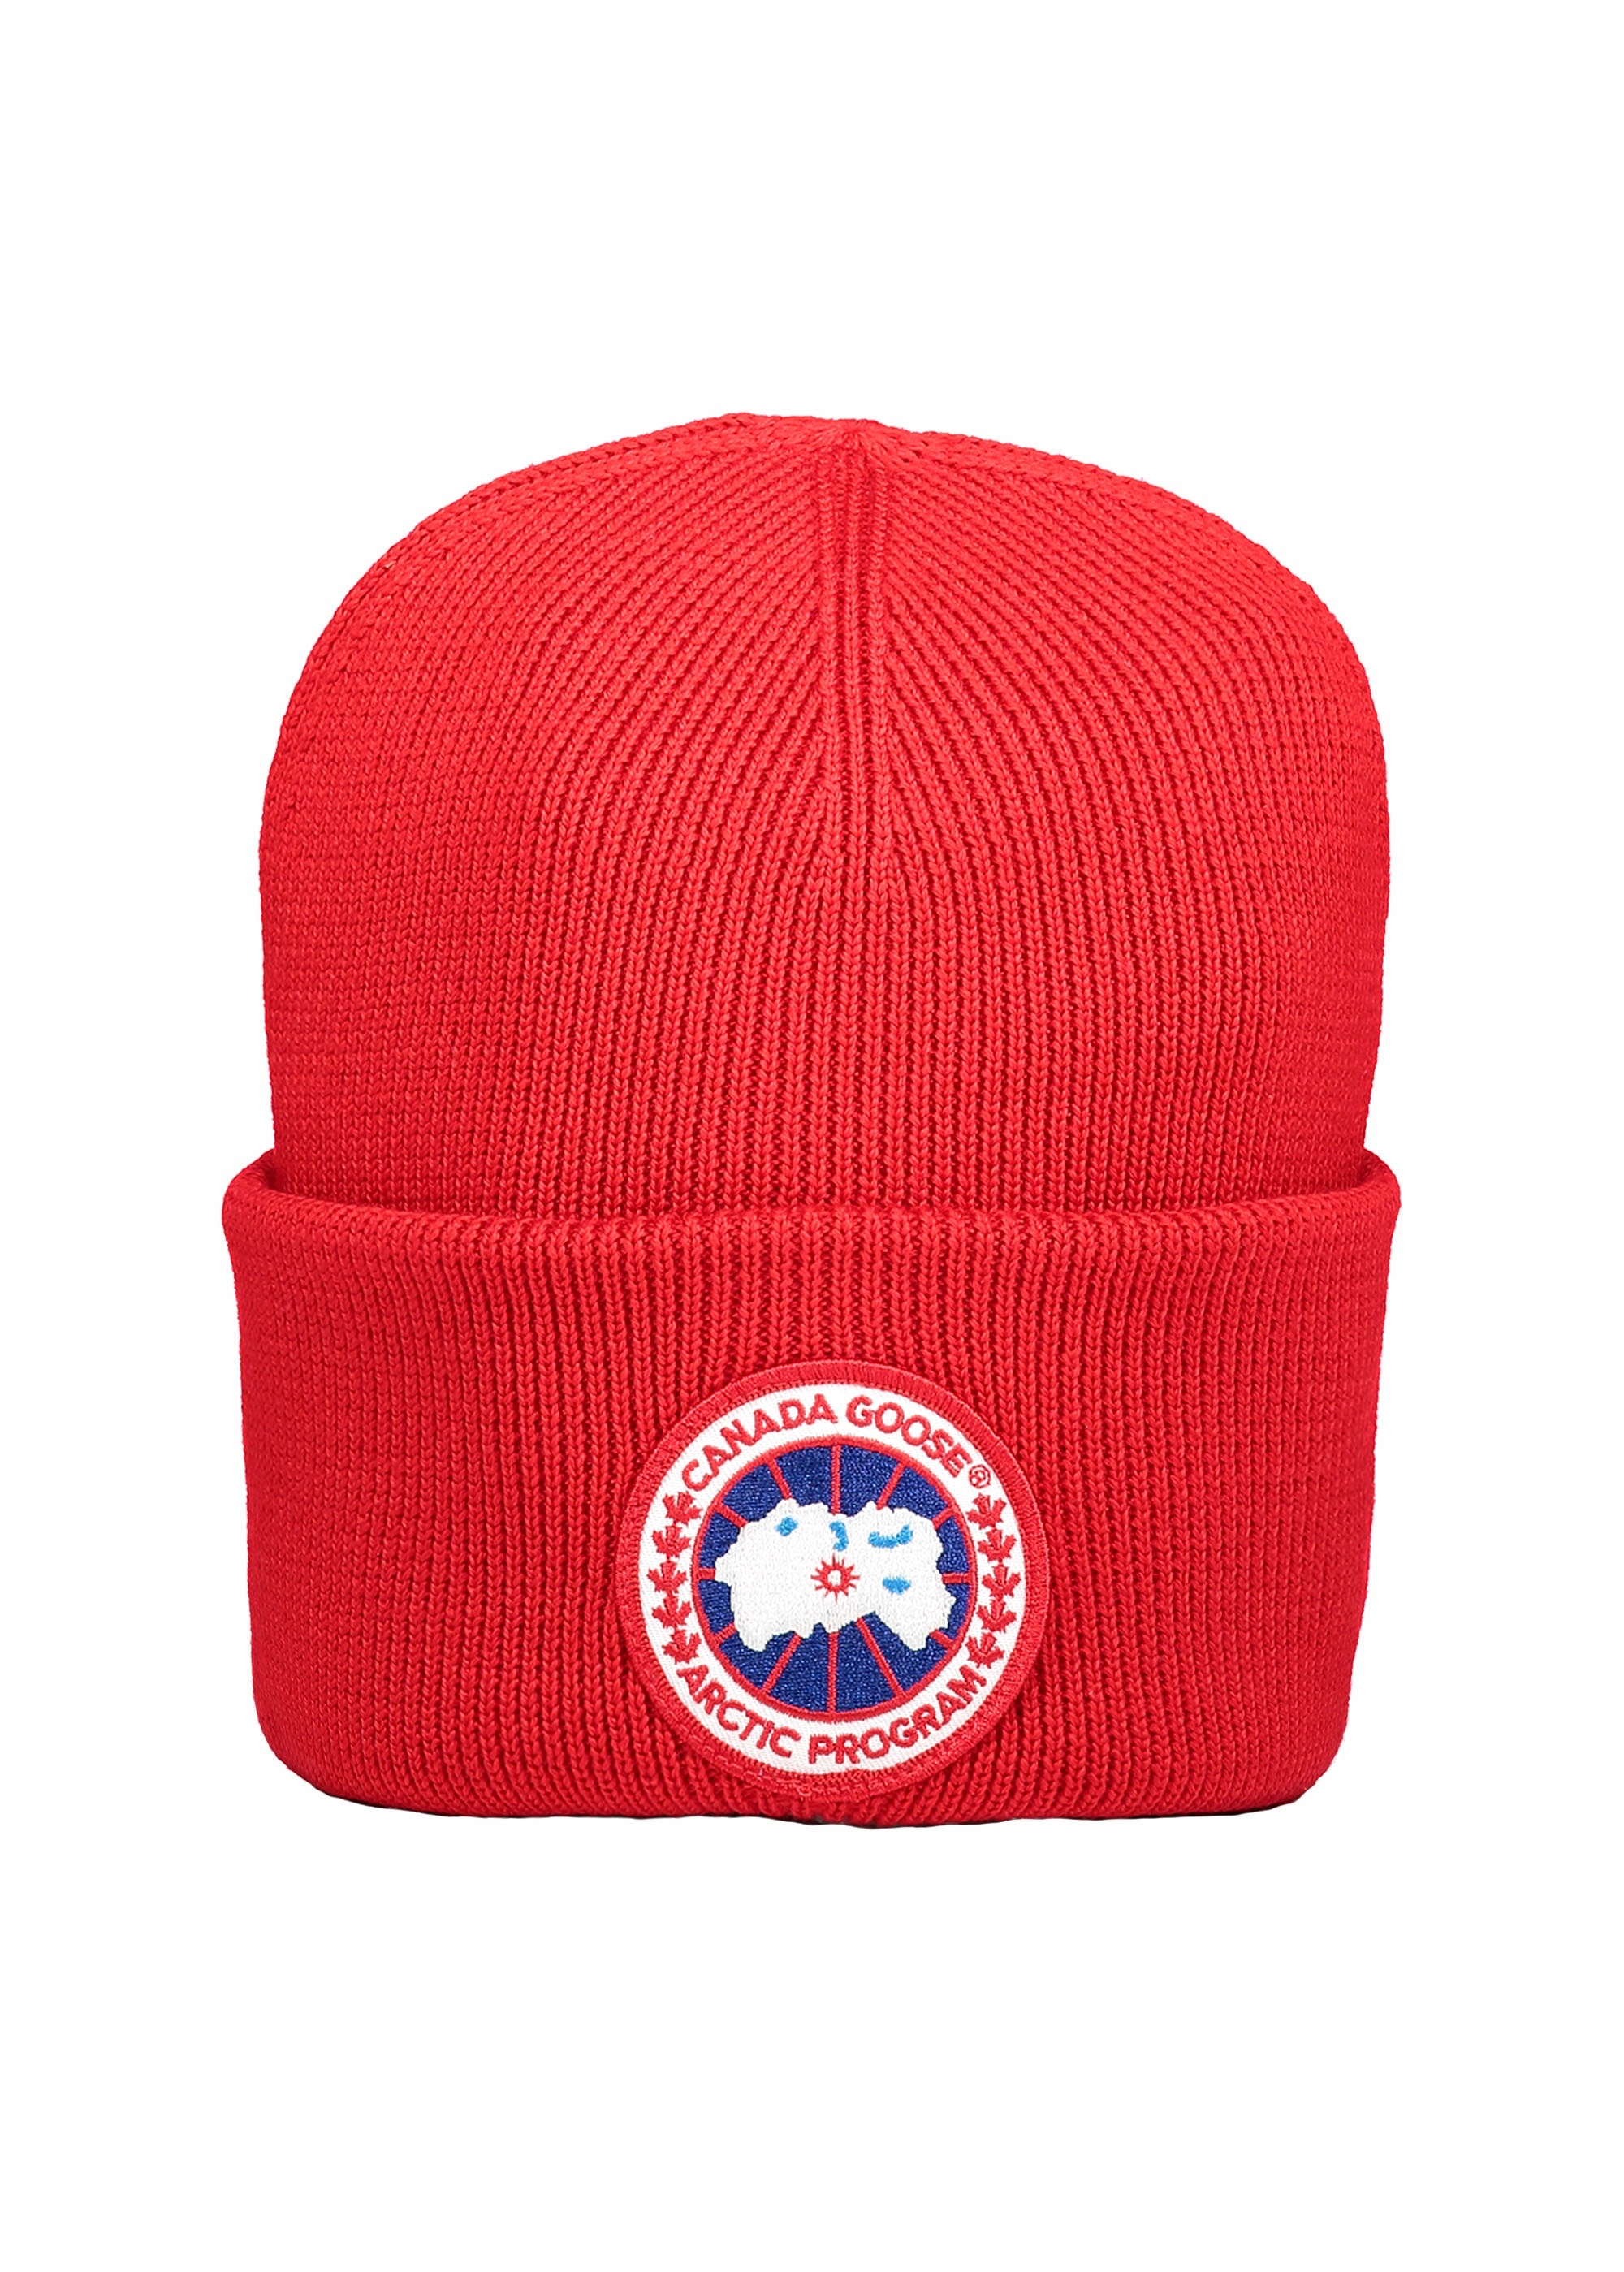 0f5d0baf054 Canada Goose Arctic Disc Toque Hat - Red - Headwear from Triads UK